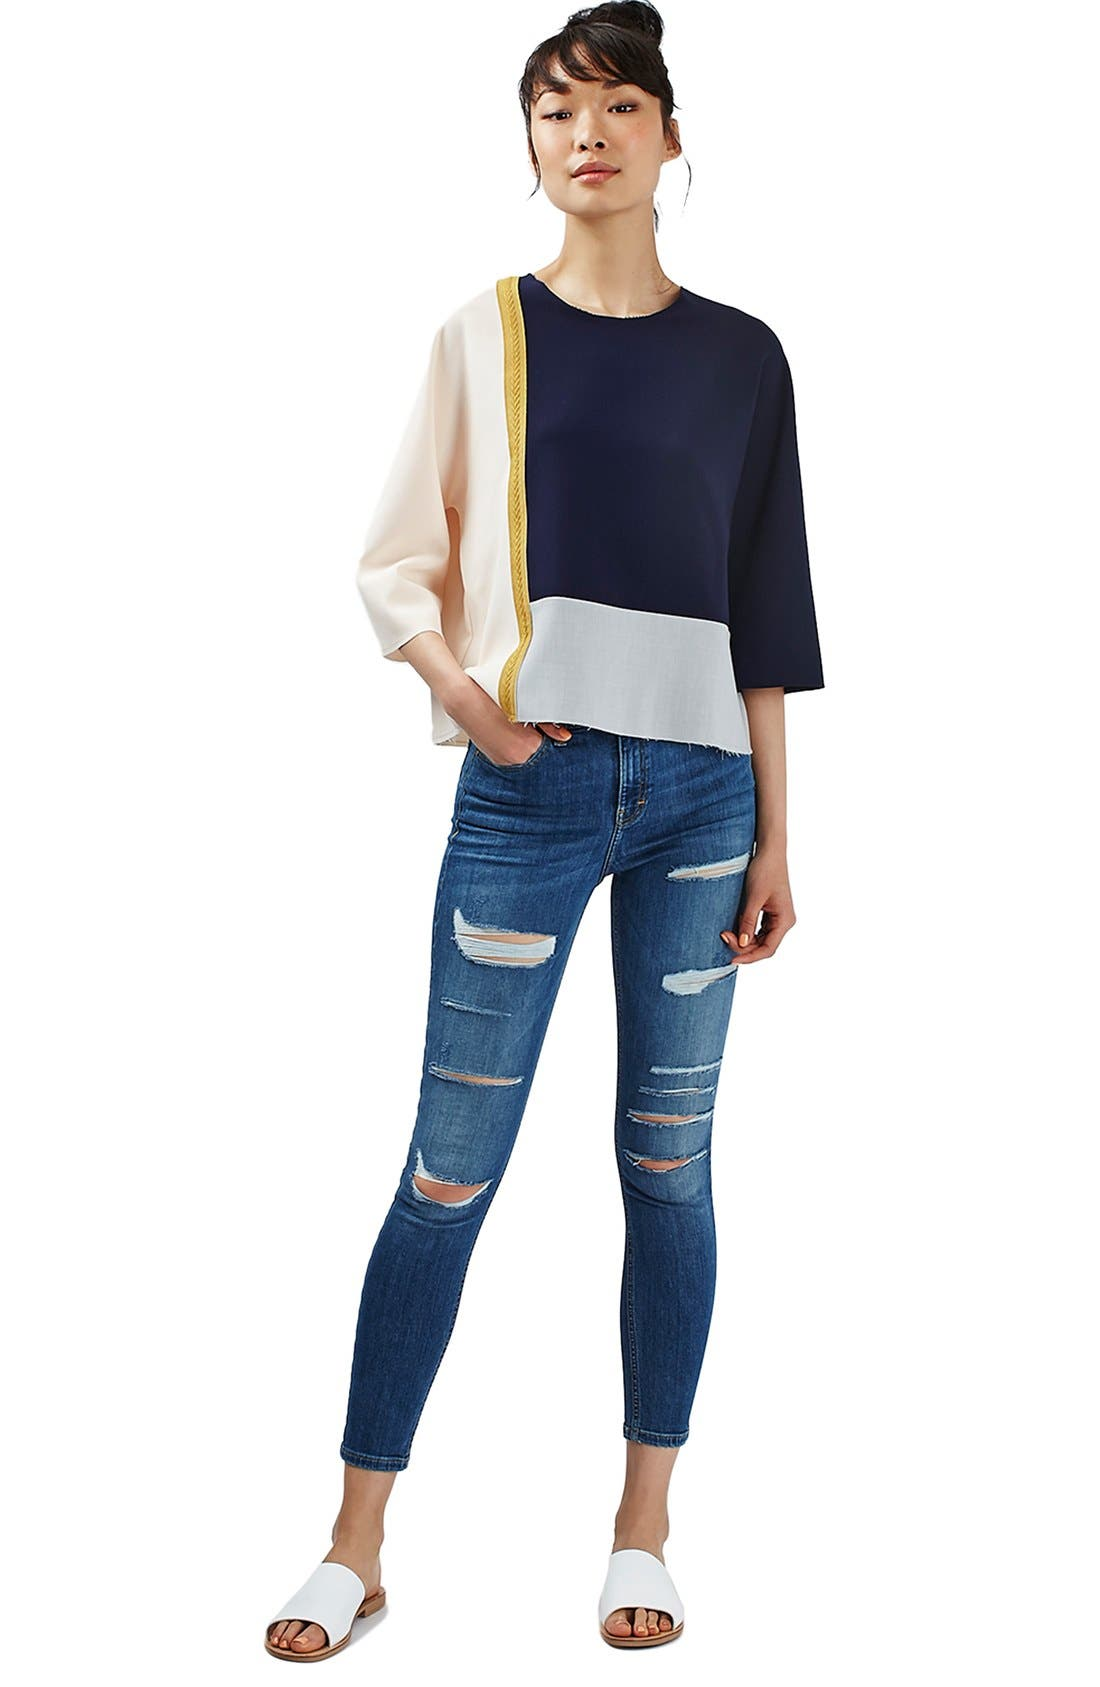 TOPSHOP, Colorblock Boxy Top, Alternate thumbnail 2, color, 410